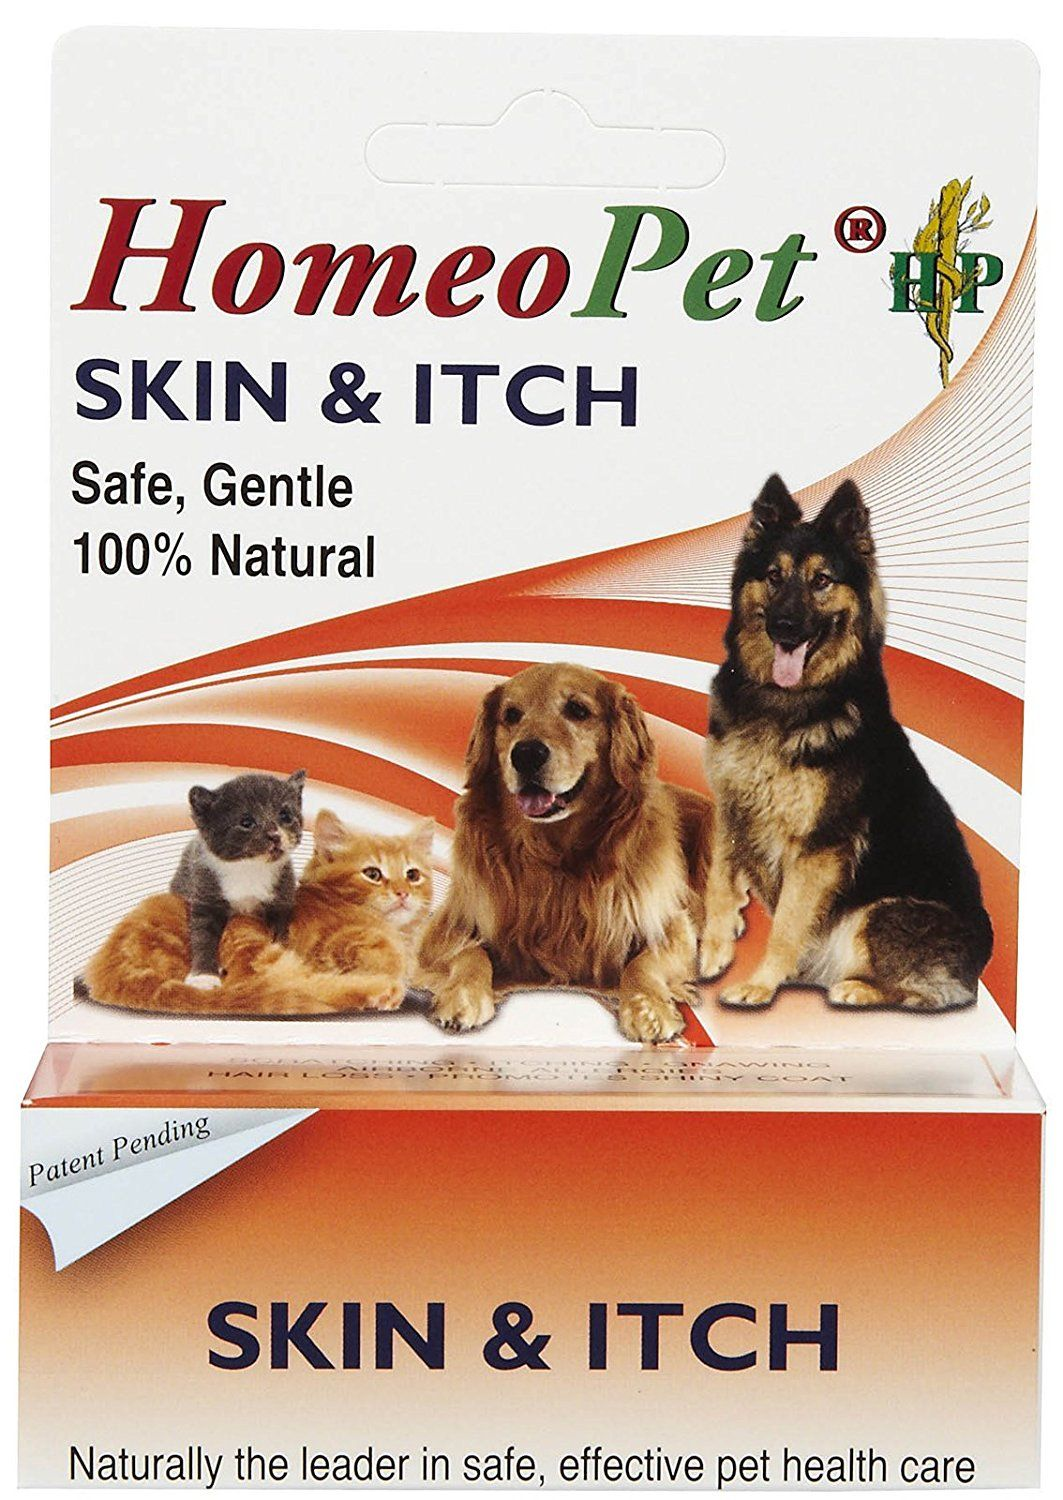 Homeocat Skin and Itch Relief Quickly view this special